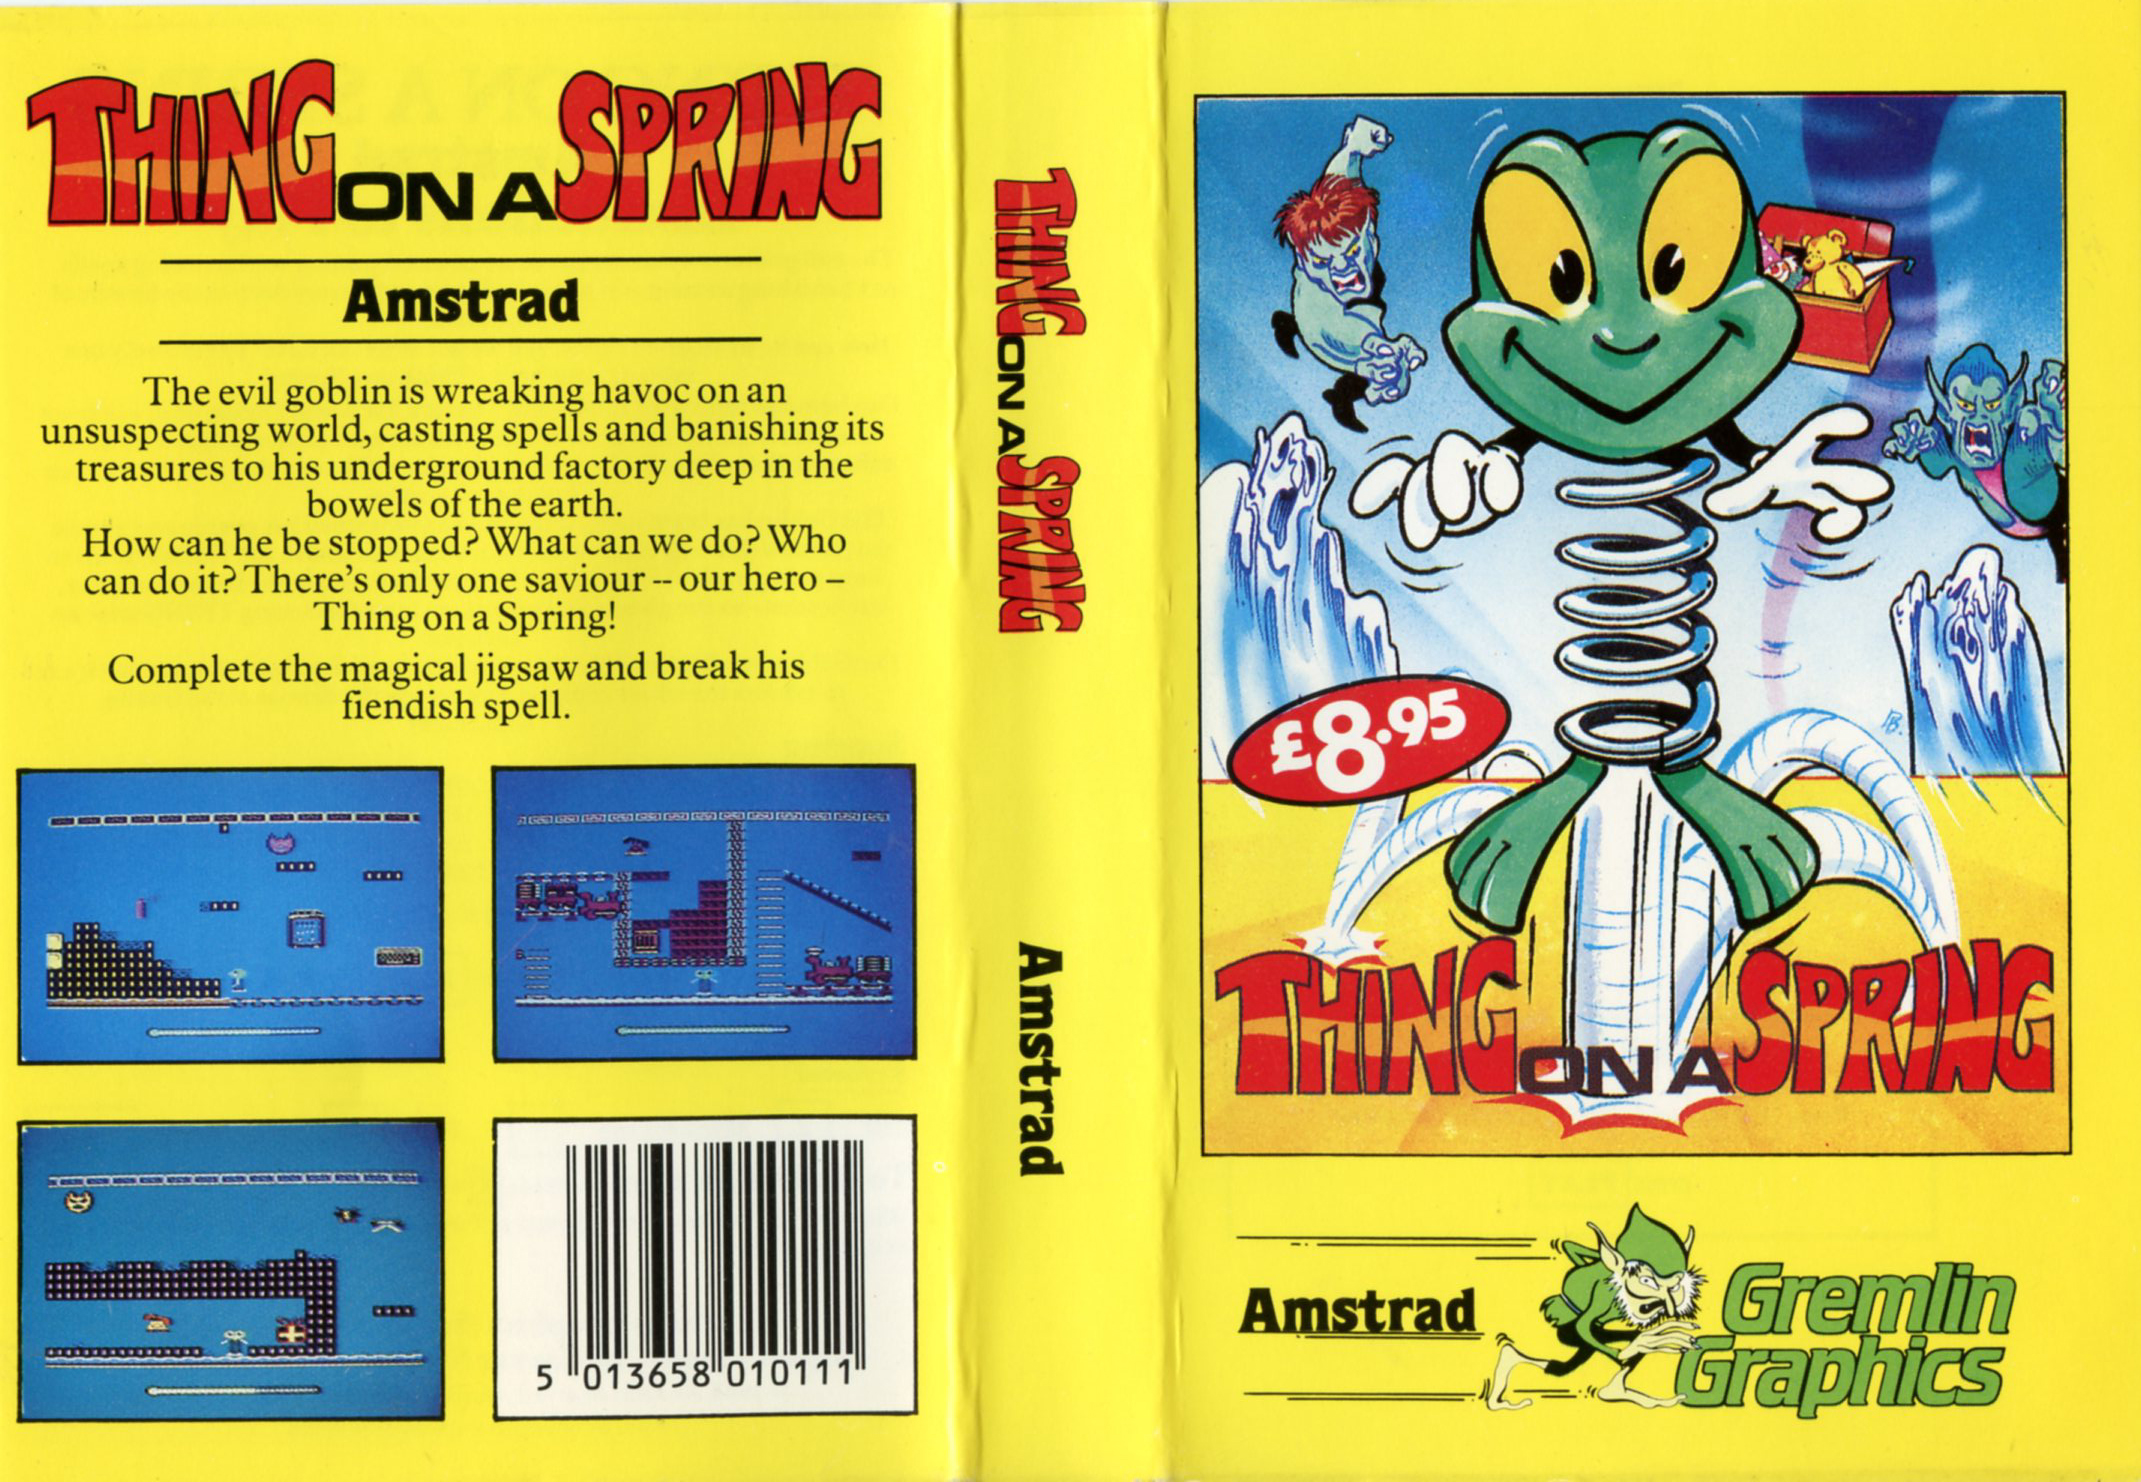 Thing on a Spring (Amstrad)